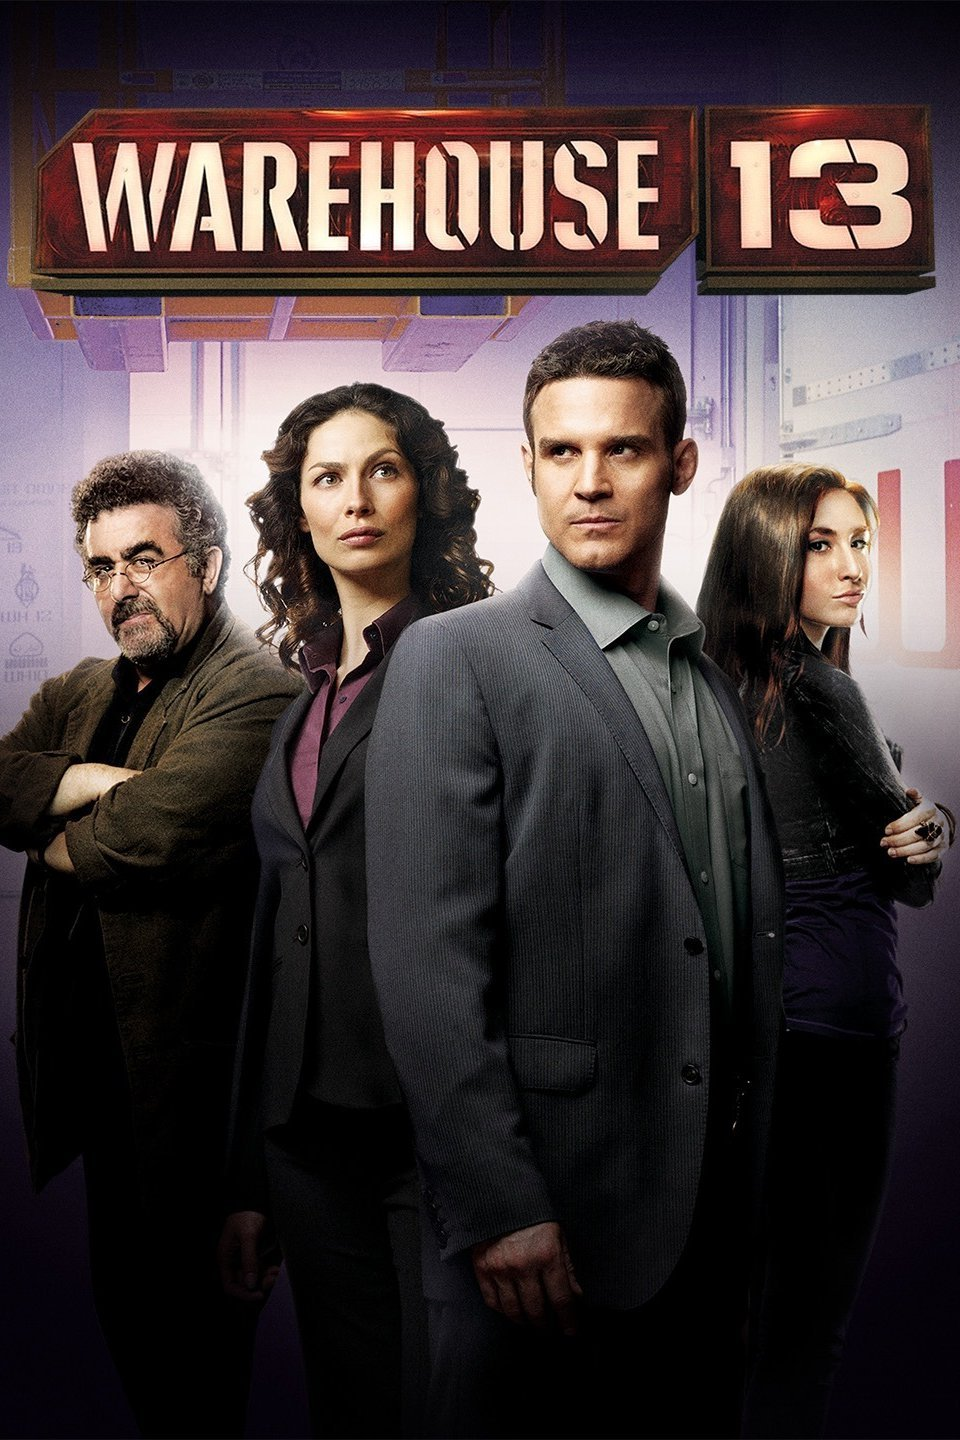 Warehouse 13 Tv Series Download Season 4 Complete 480p WEB-DL